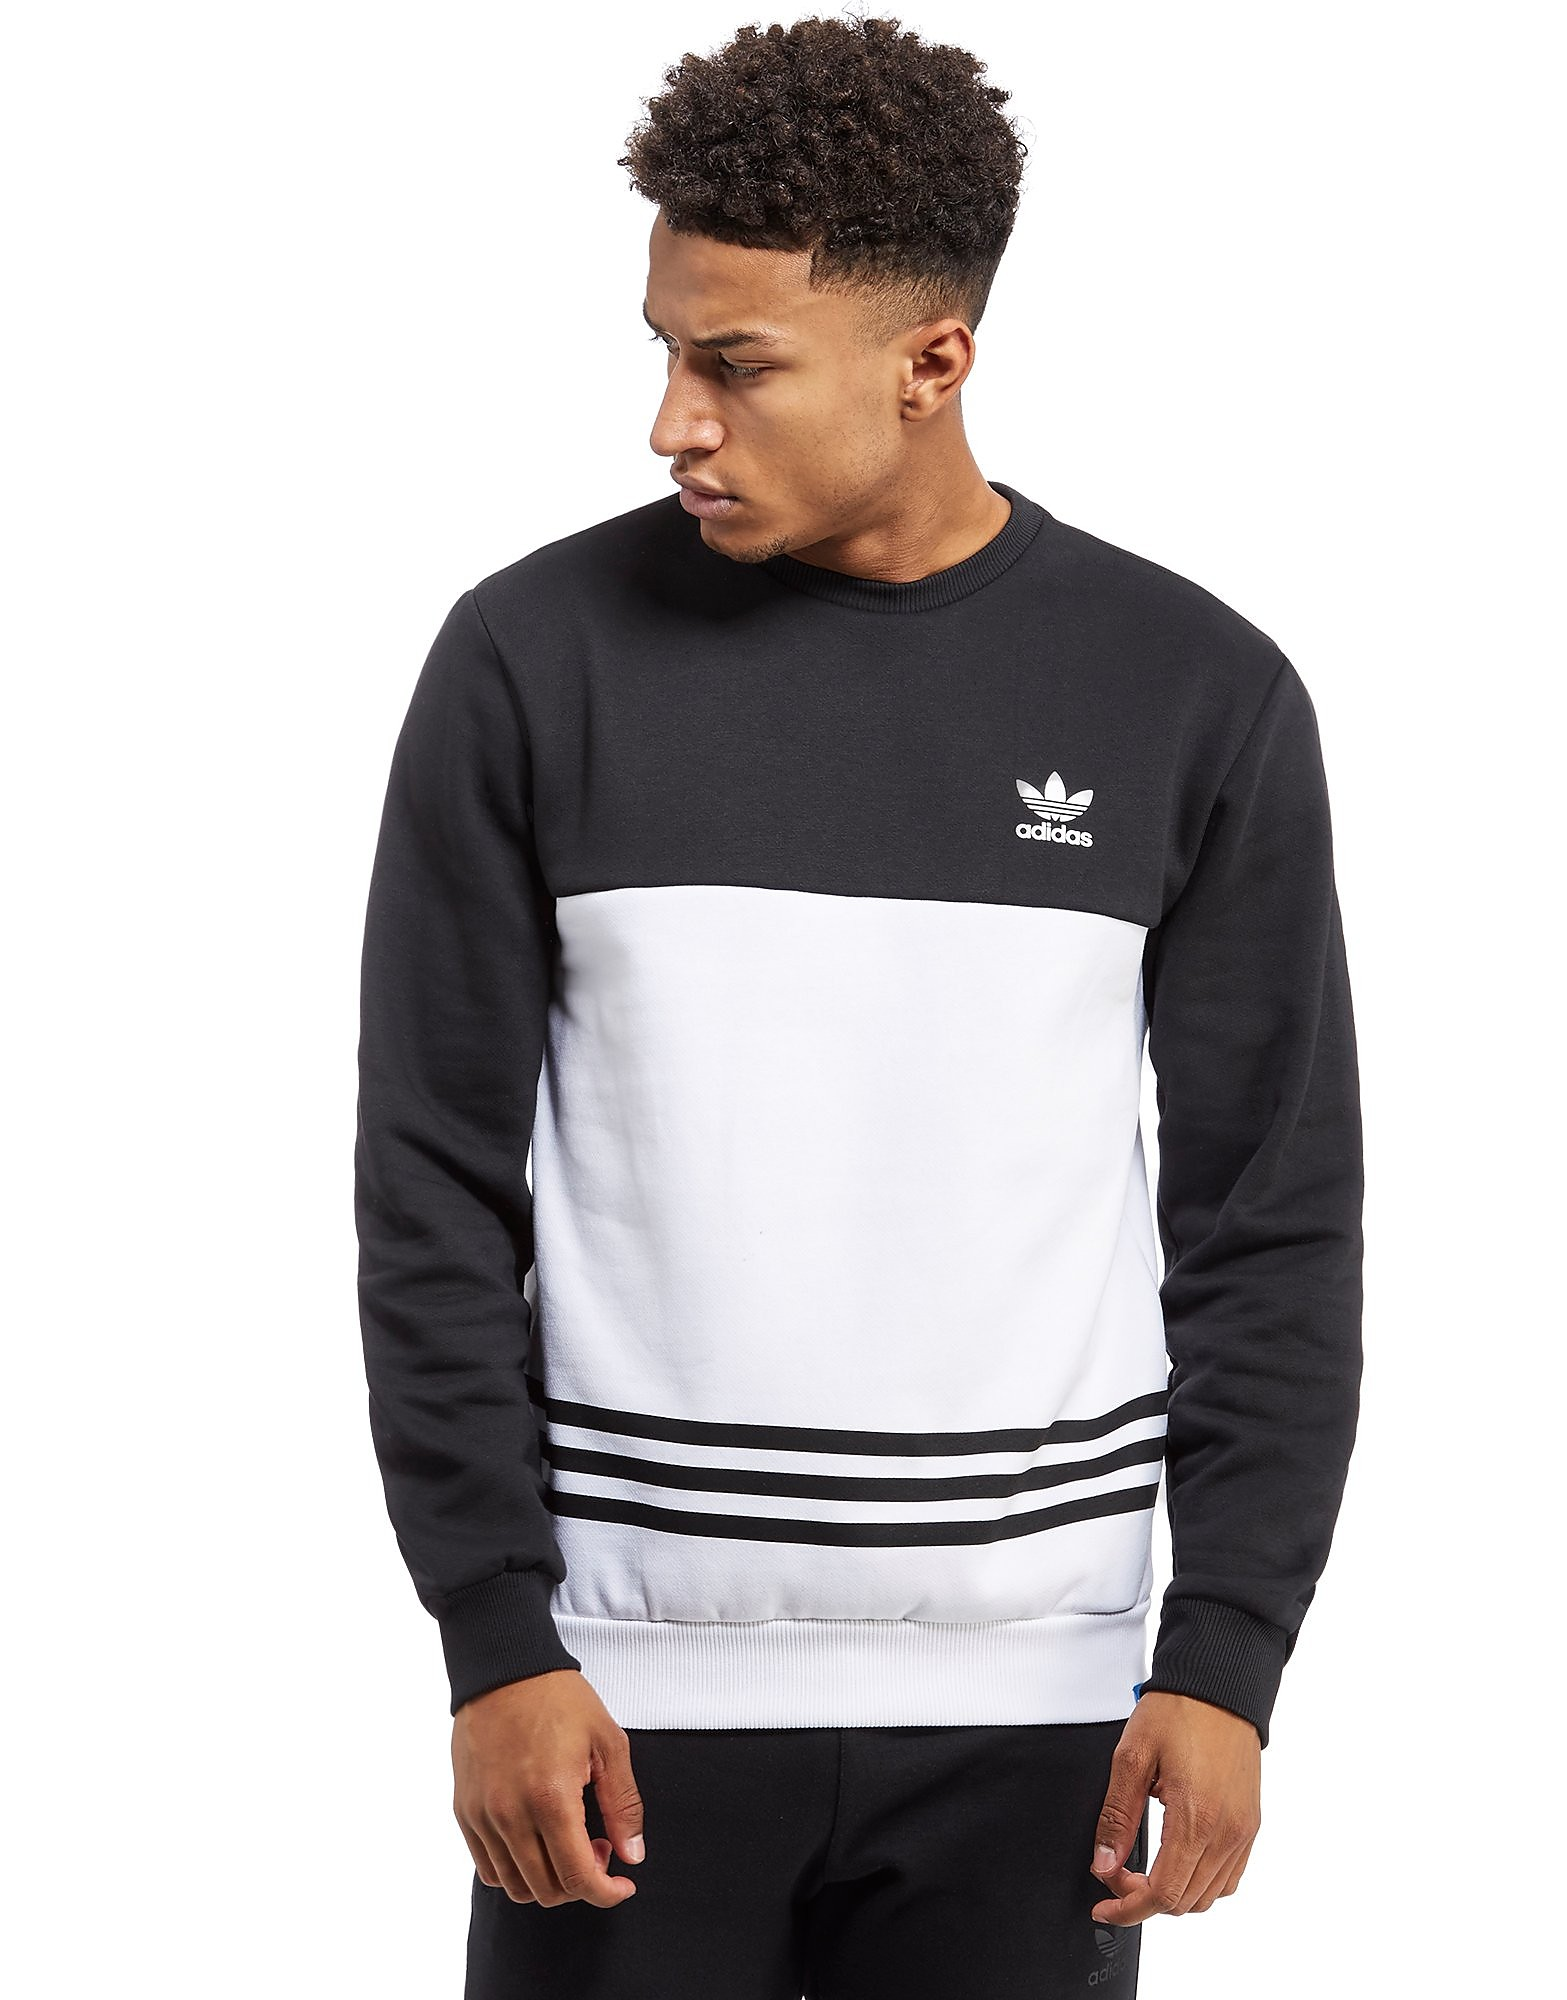 adidas Originals 3-Stripes Linear Sweatshirt